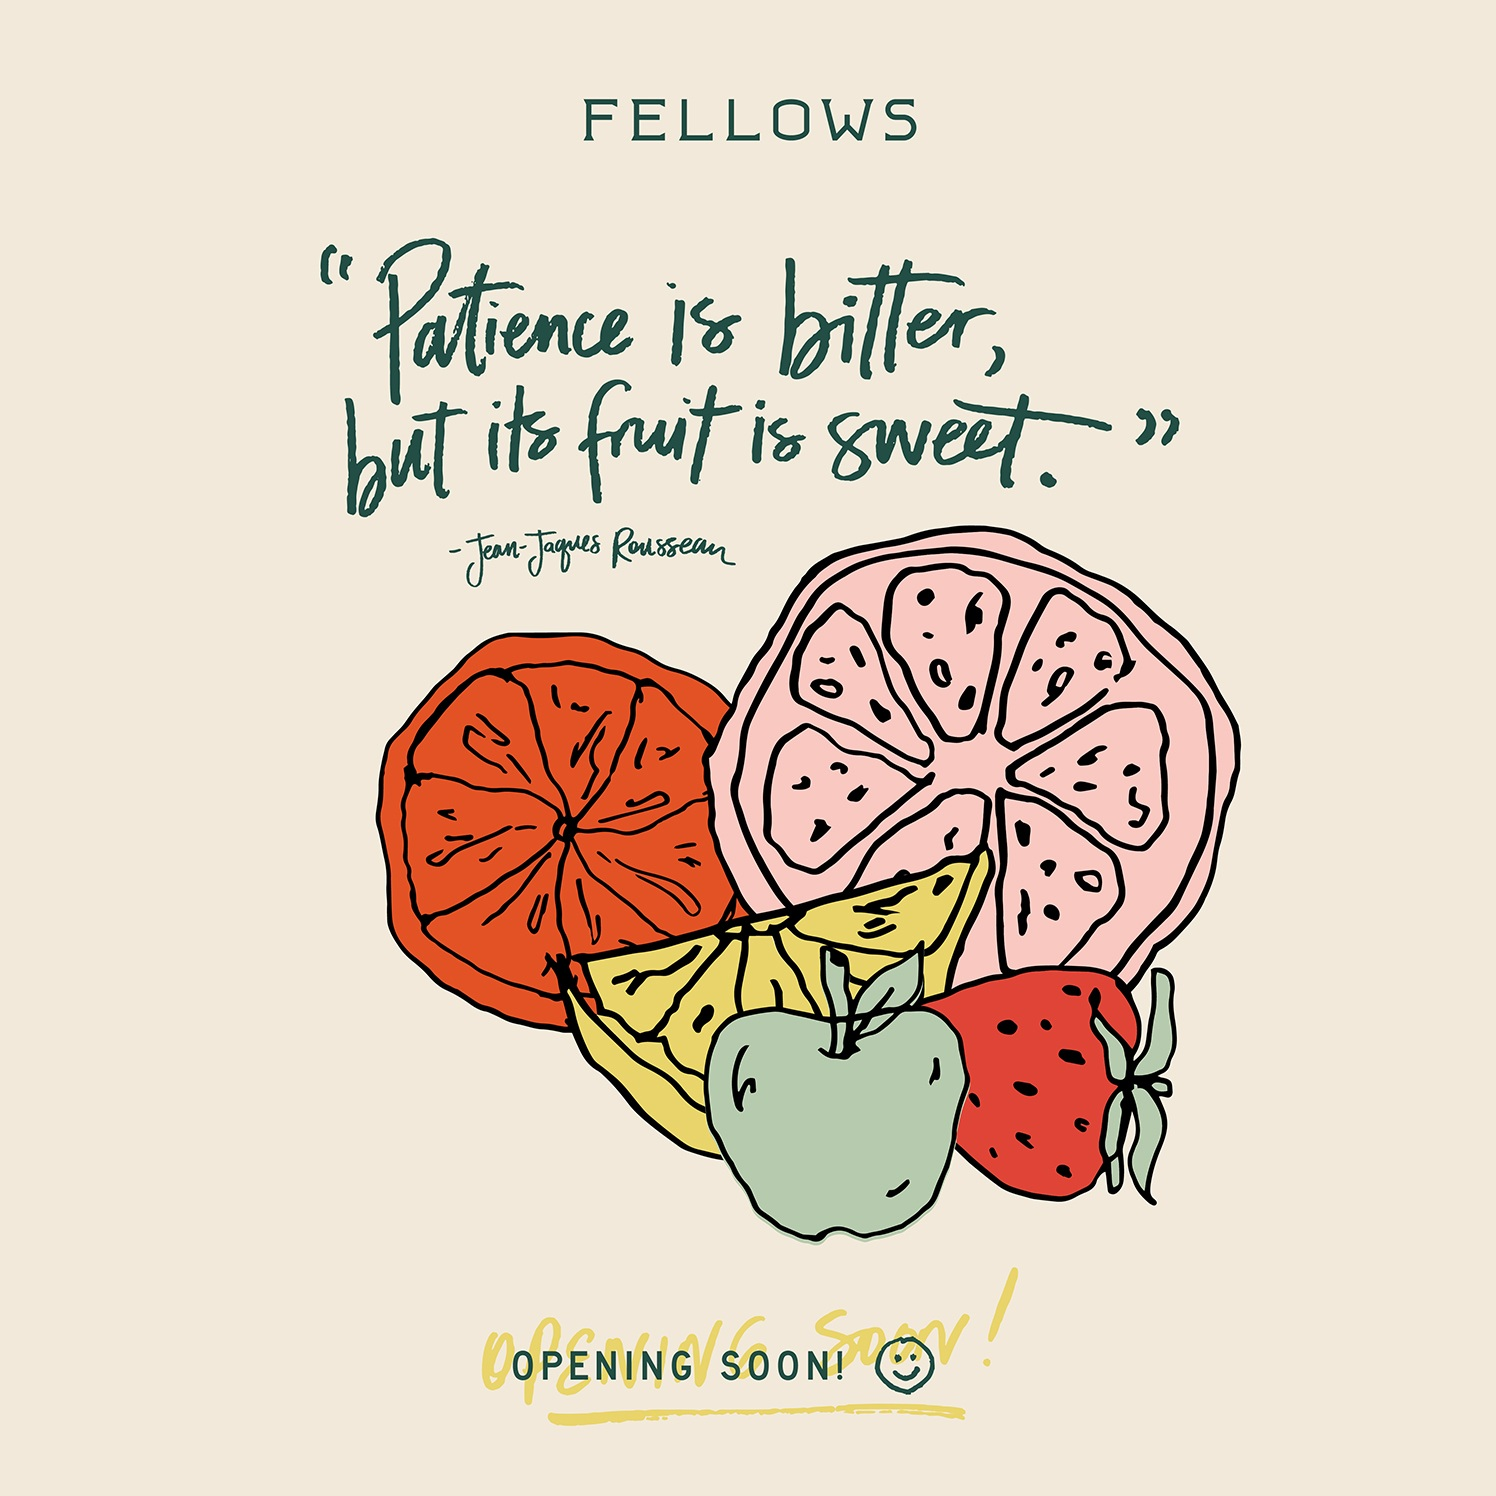 fellows-cafe-patience-restaurateur.jpg